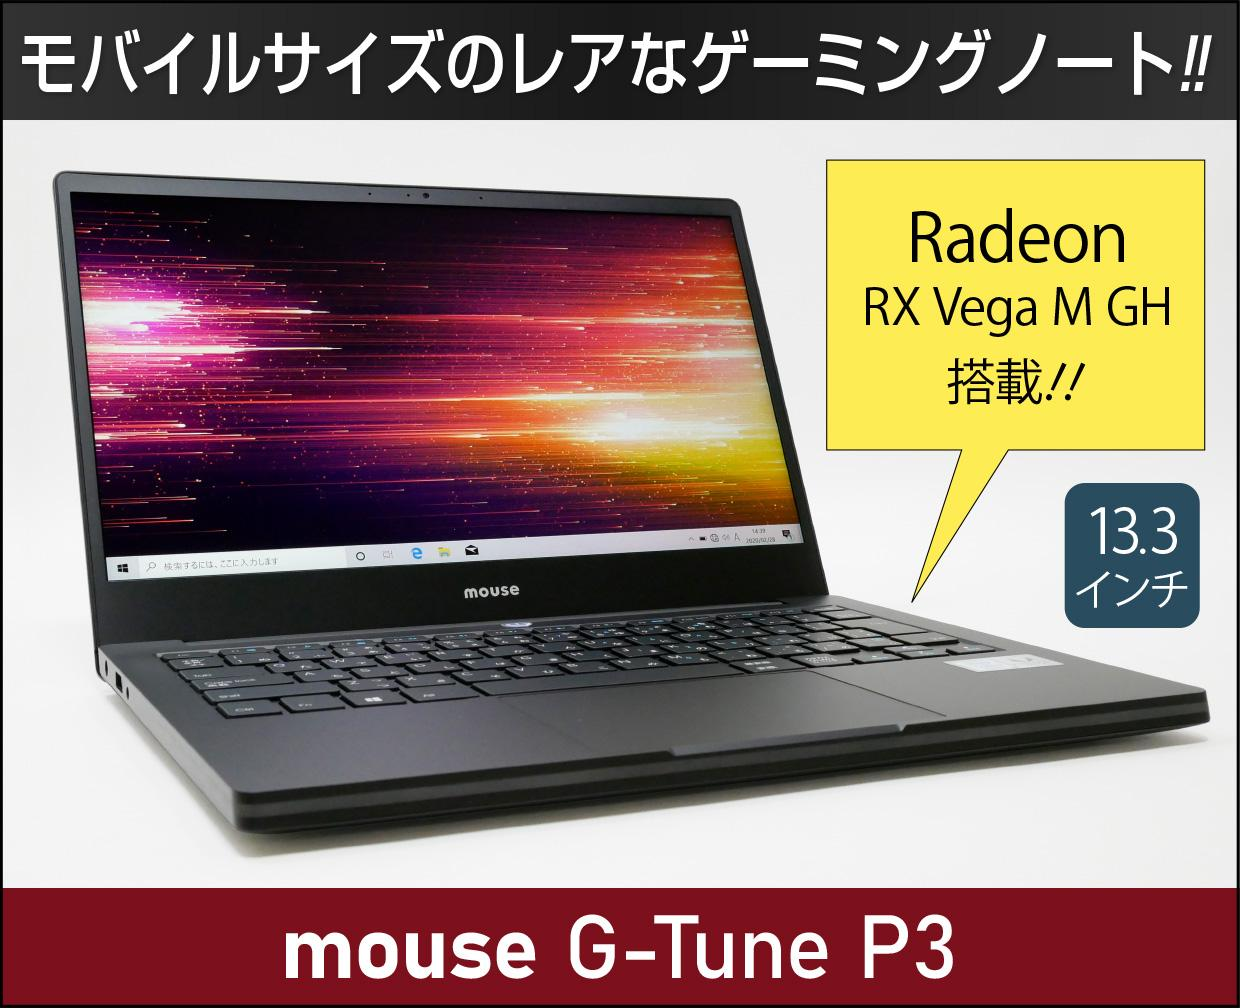 Main image of mouse computer G-Tune P3